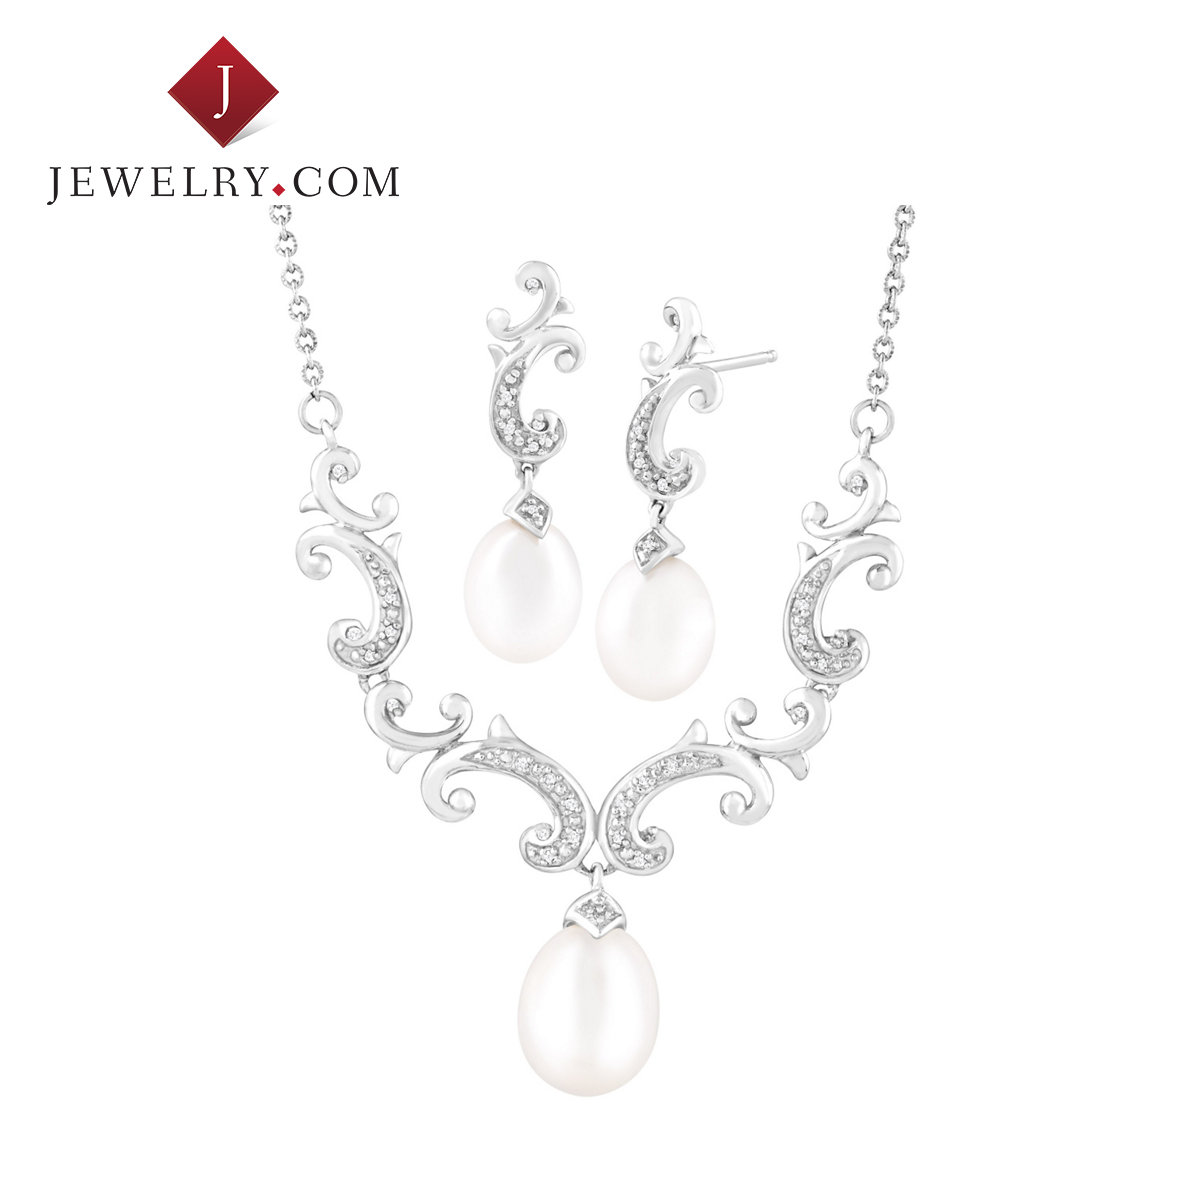 Jewelry.com official 925 silver freshwater pearl inlay 0.1 karat small diamond necklace earrings earrings set